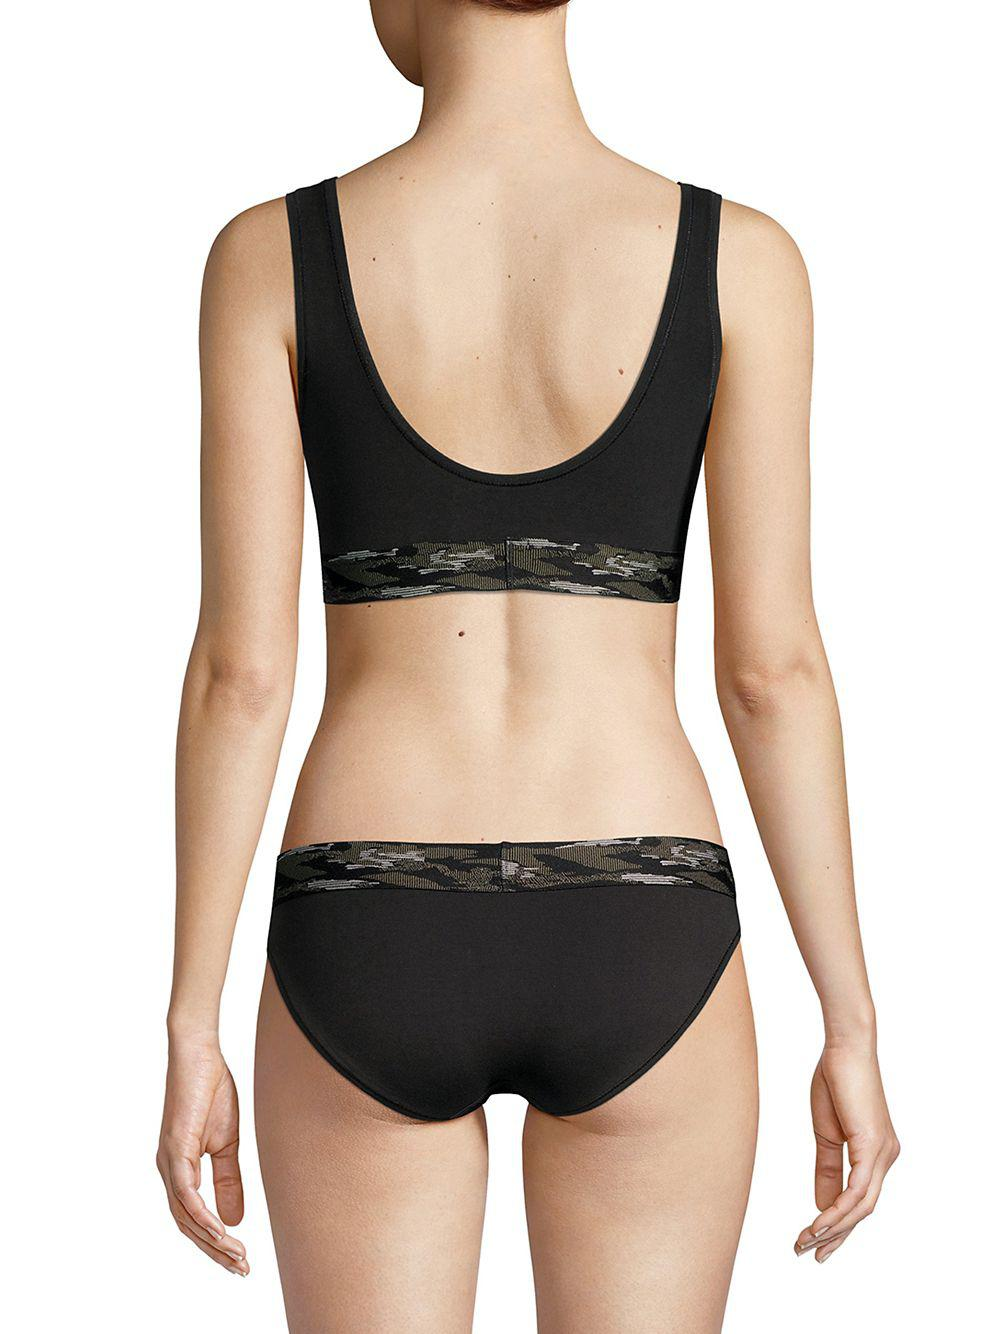 b0790c5e6ebf68 Calvin Klein - Black Camo Cotton Unlined Bralette - Lyst. View fullscreen